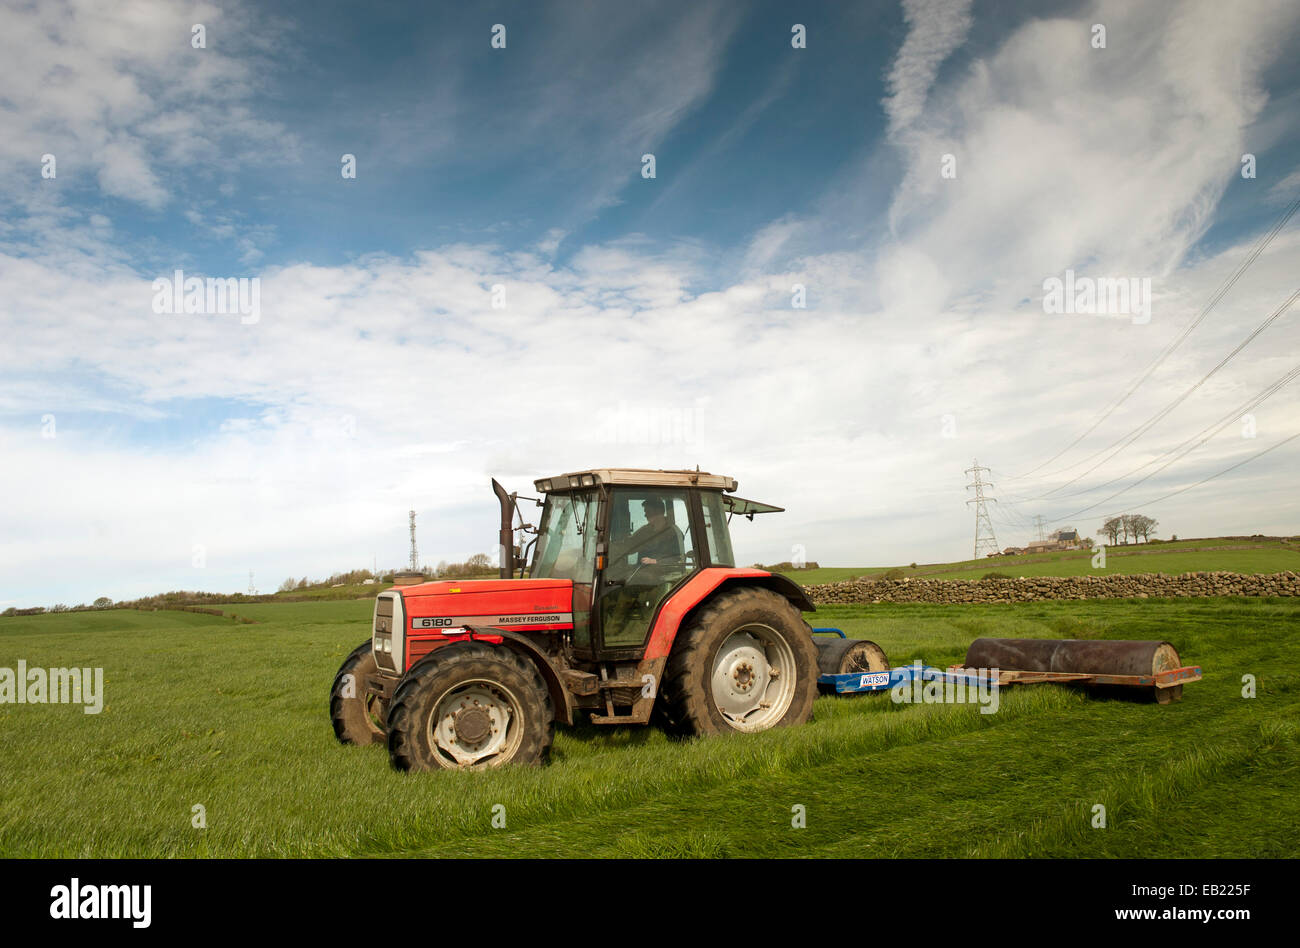 farm agricultural machinery roller stockfotos farm agricultural machinery roller bilder alamy. Black Bedroom Furniture Sets. Home Design Ideas